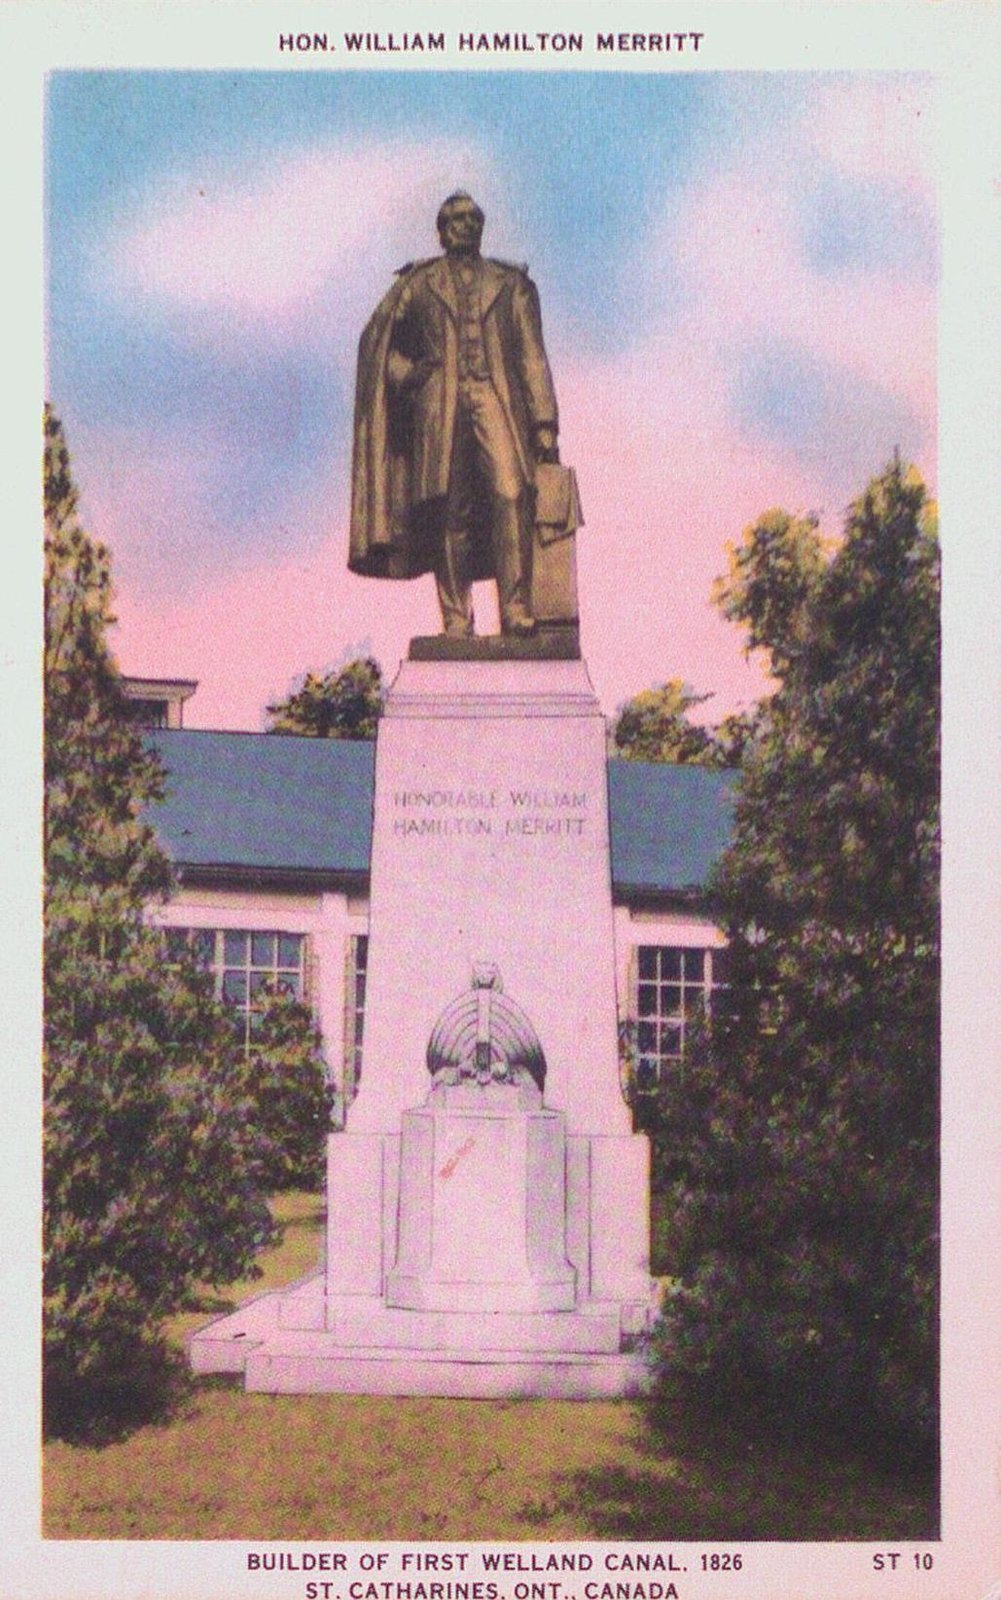 William Hamilton Merritt Monument